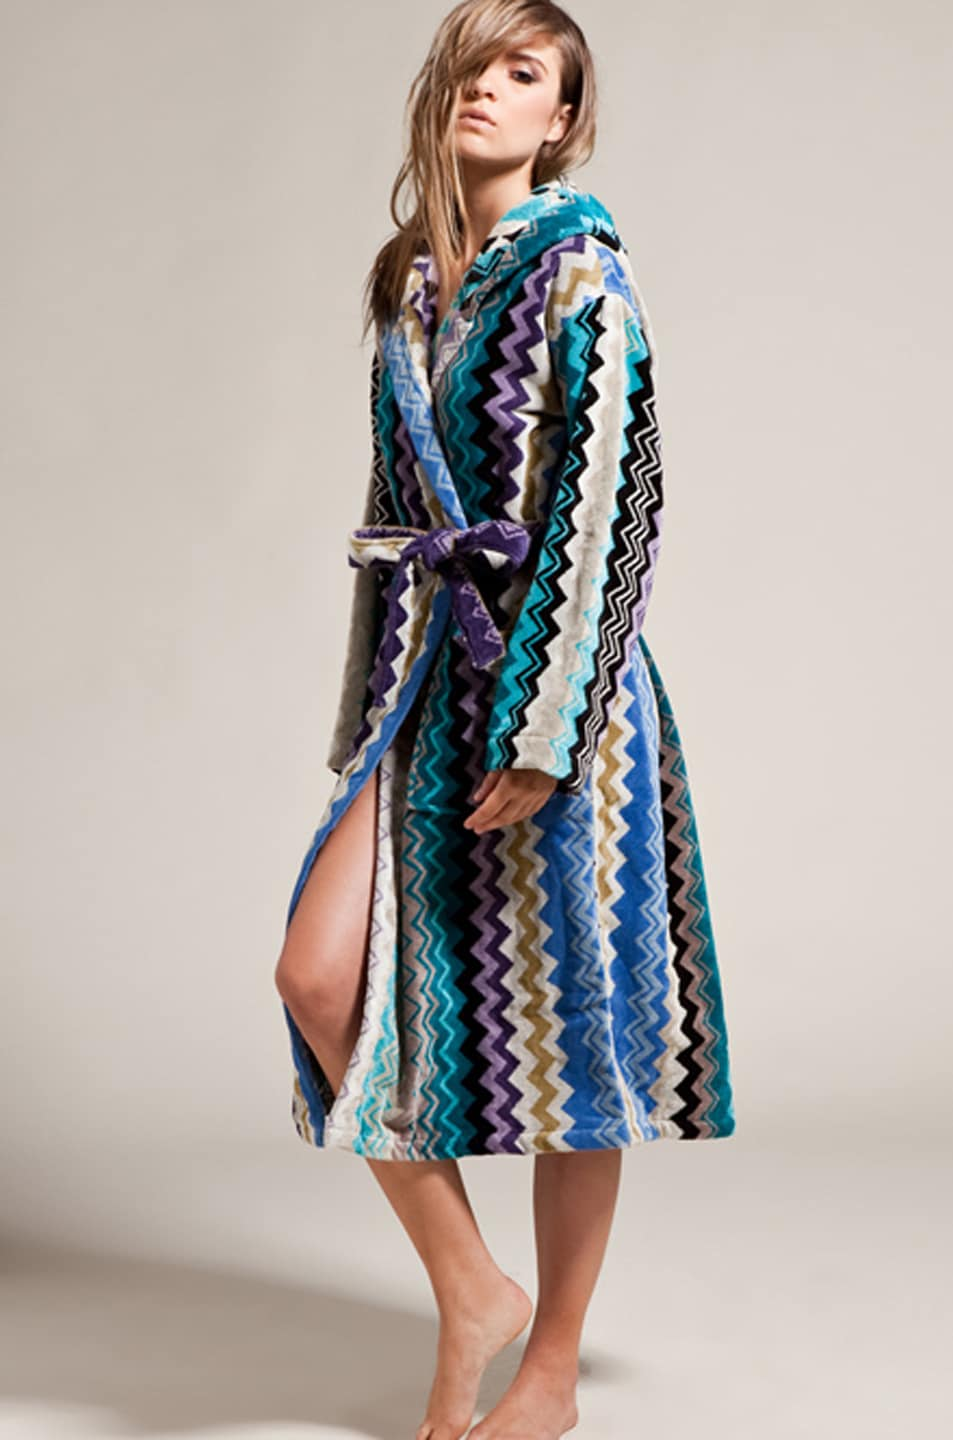 missoni home giacomo hooded bathrobe in blues  fwrd - image  of missoni home giacomo hooded bathrobe in blues